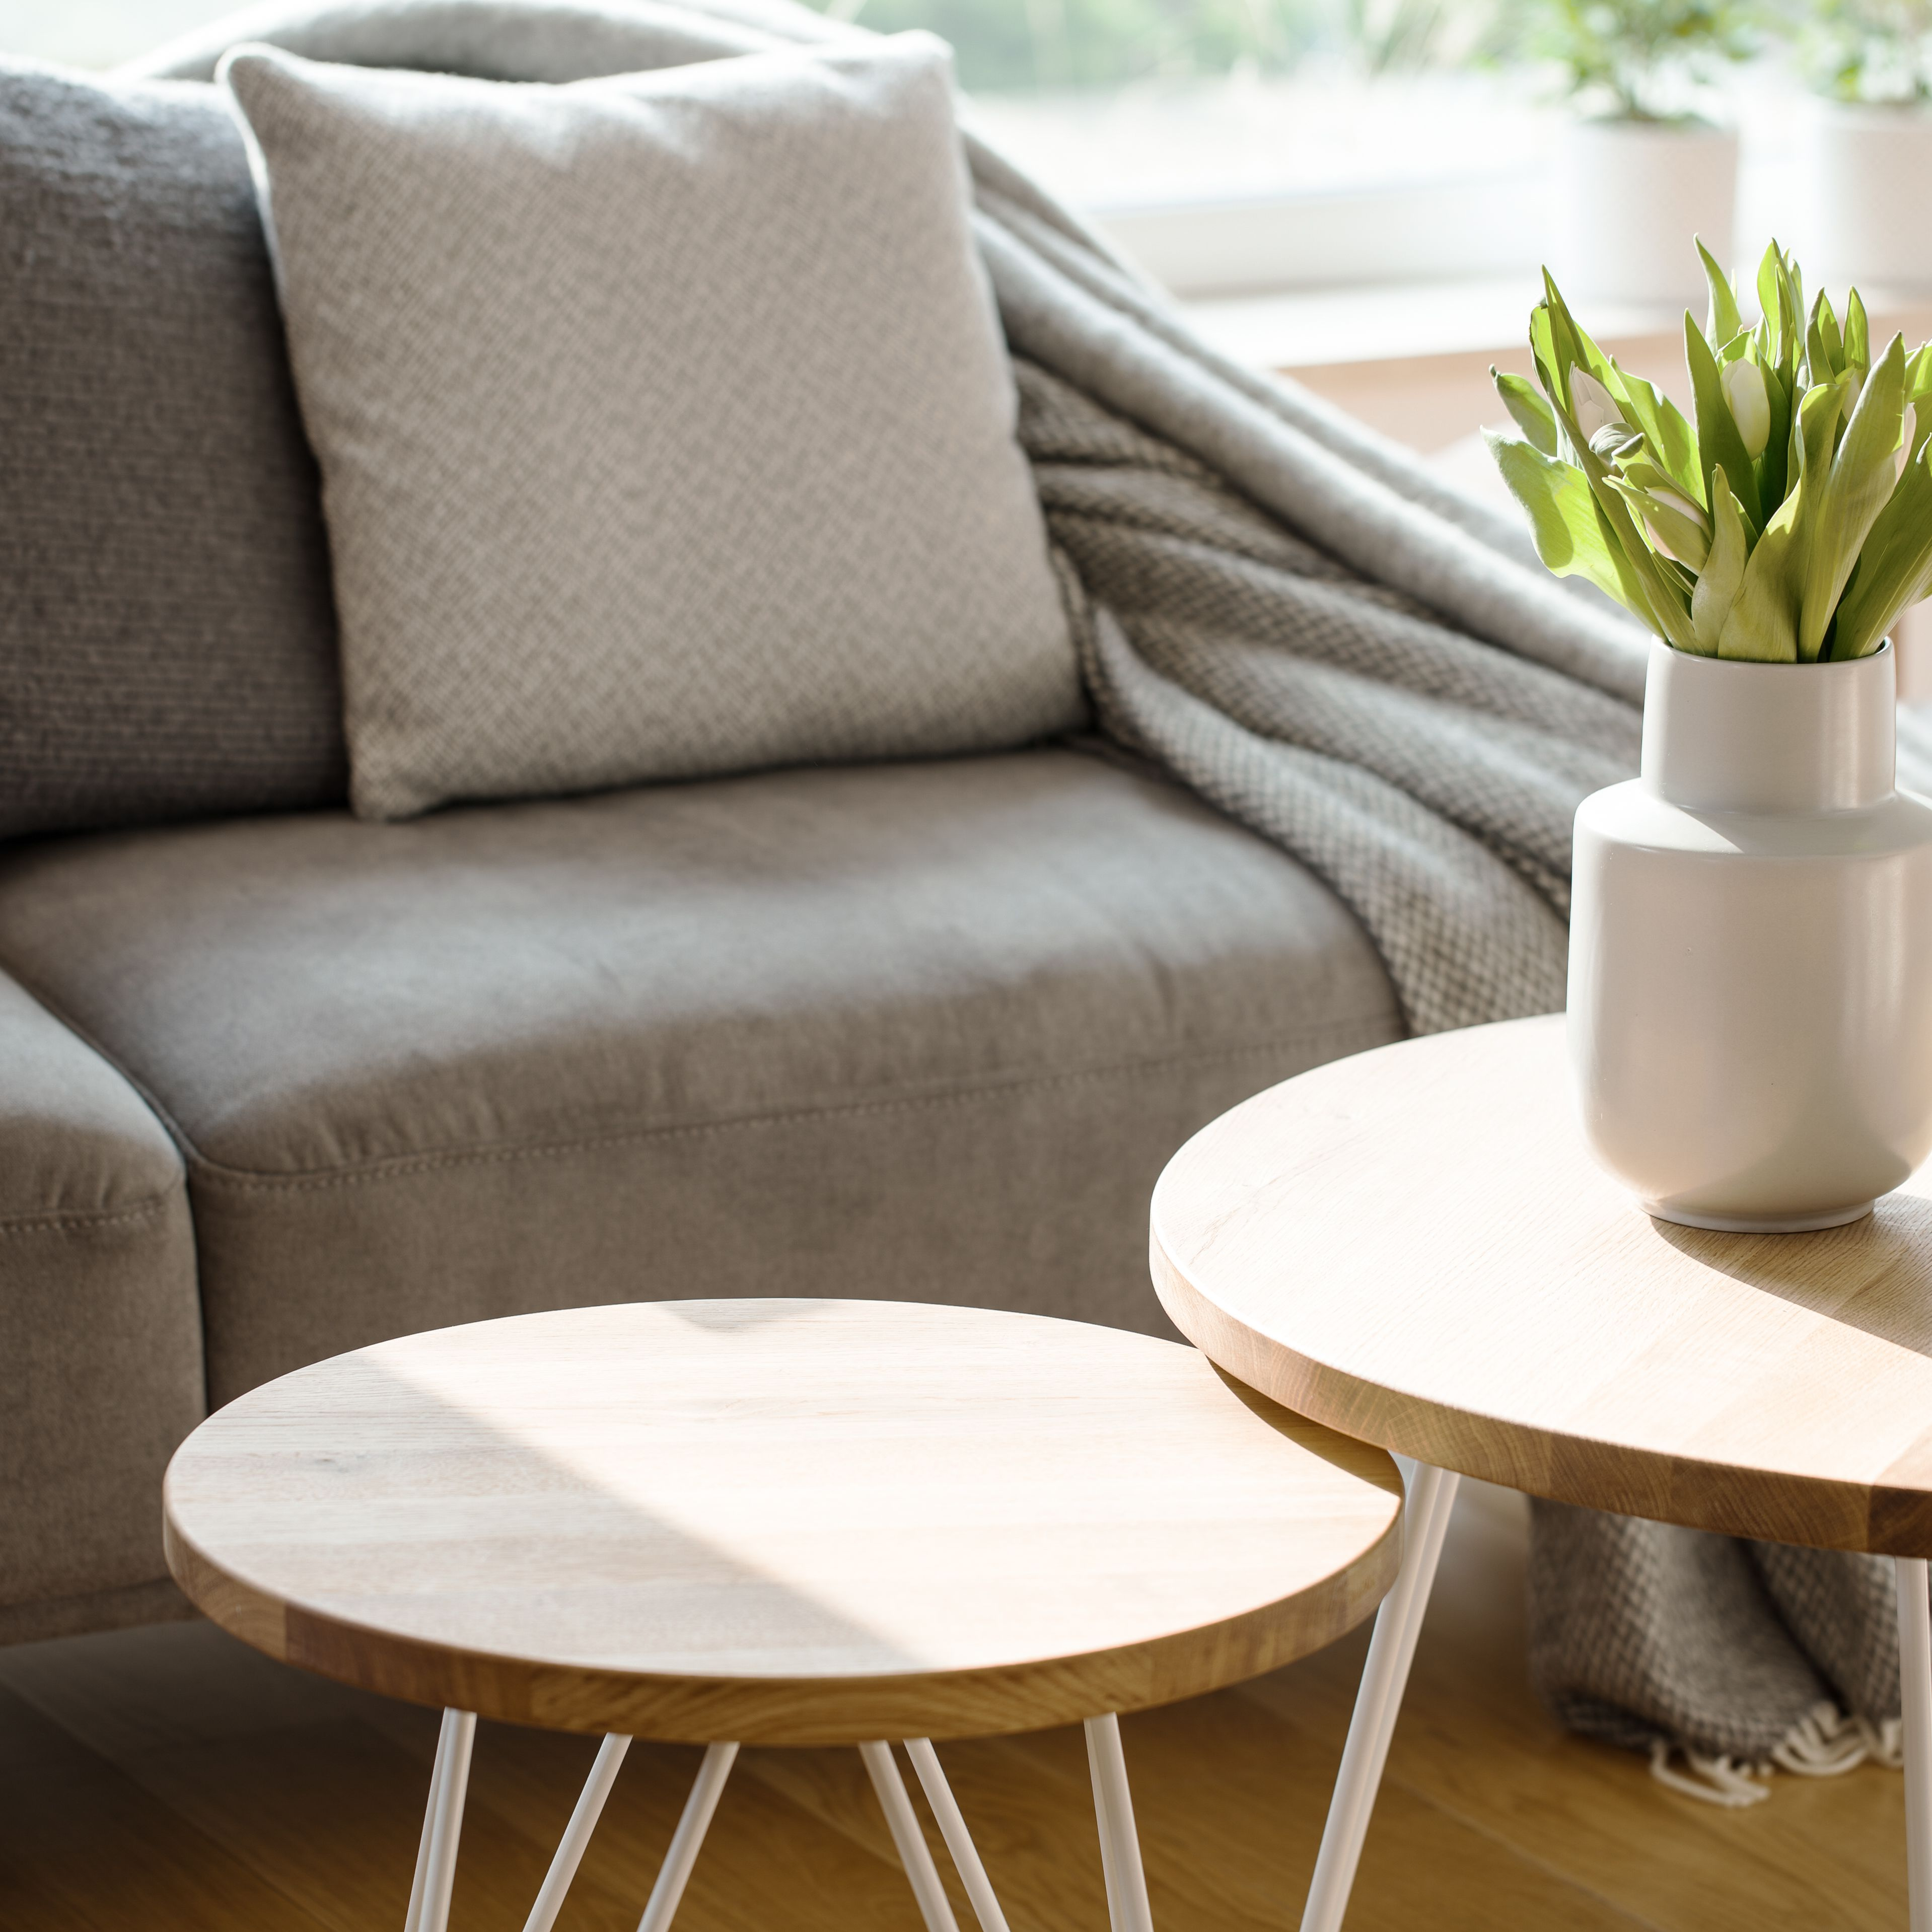 7 coffee table alternatives for small